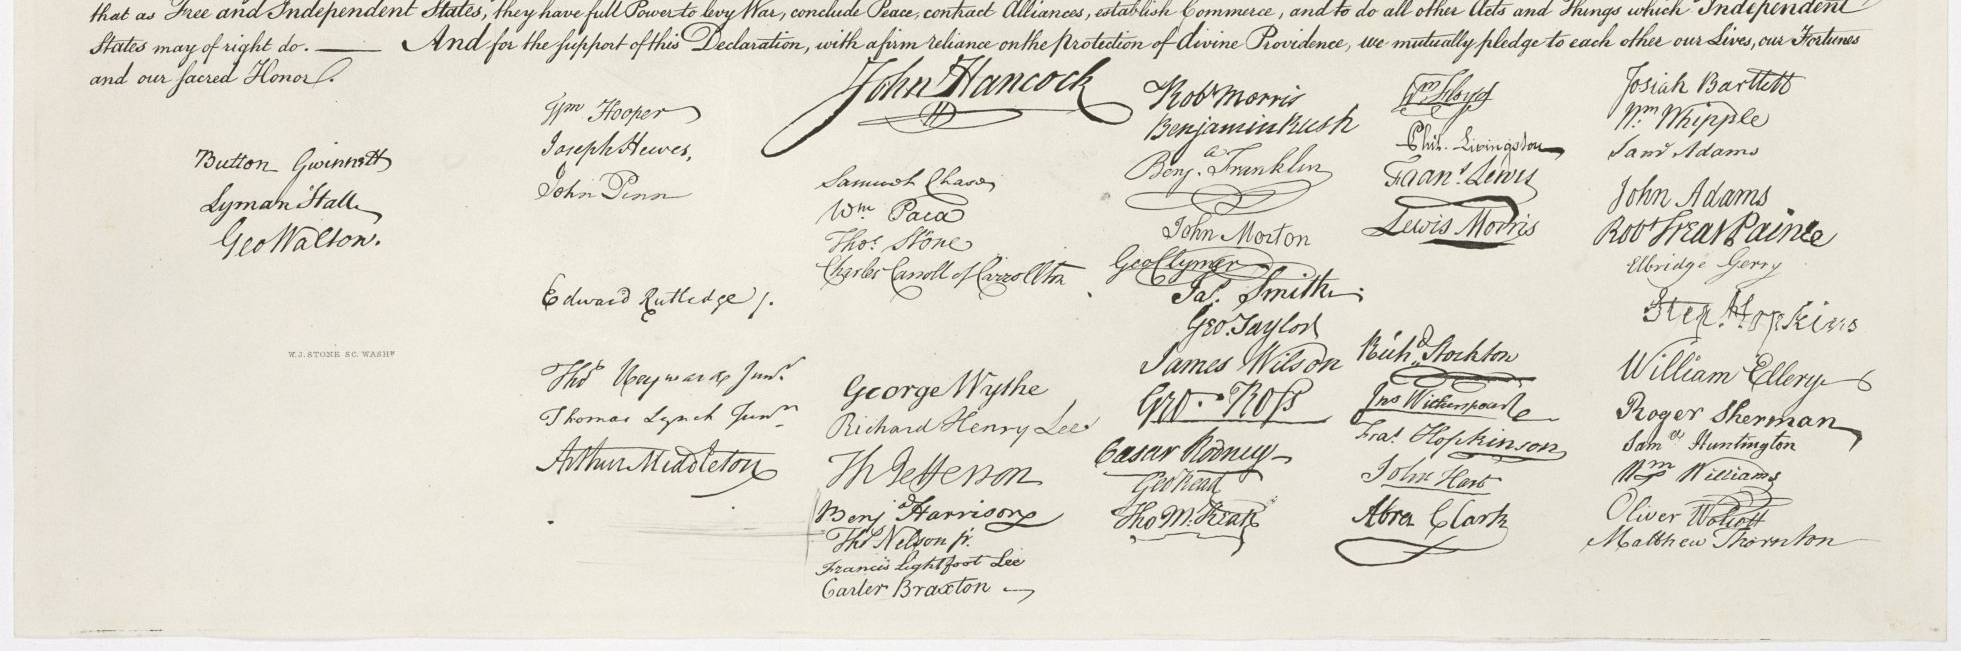 Open file in new window: USA declaration independence signatures pdf